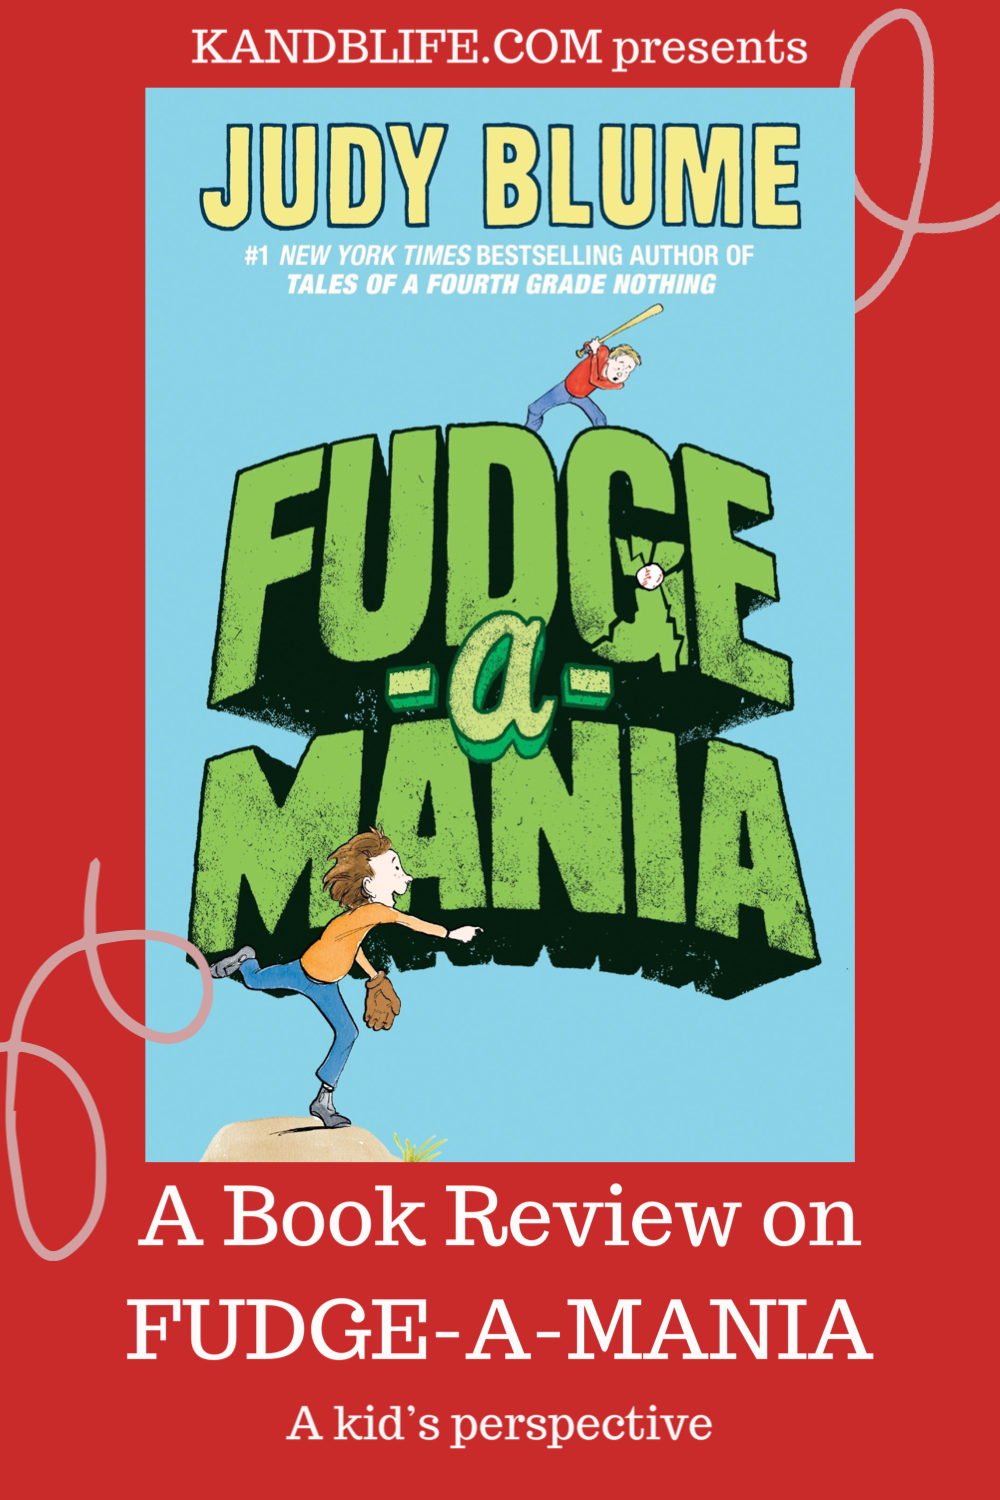 Blue book cover for Fudge-A-Mania by Judy Blume.